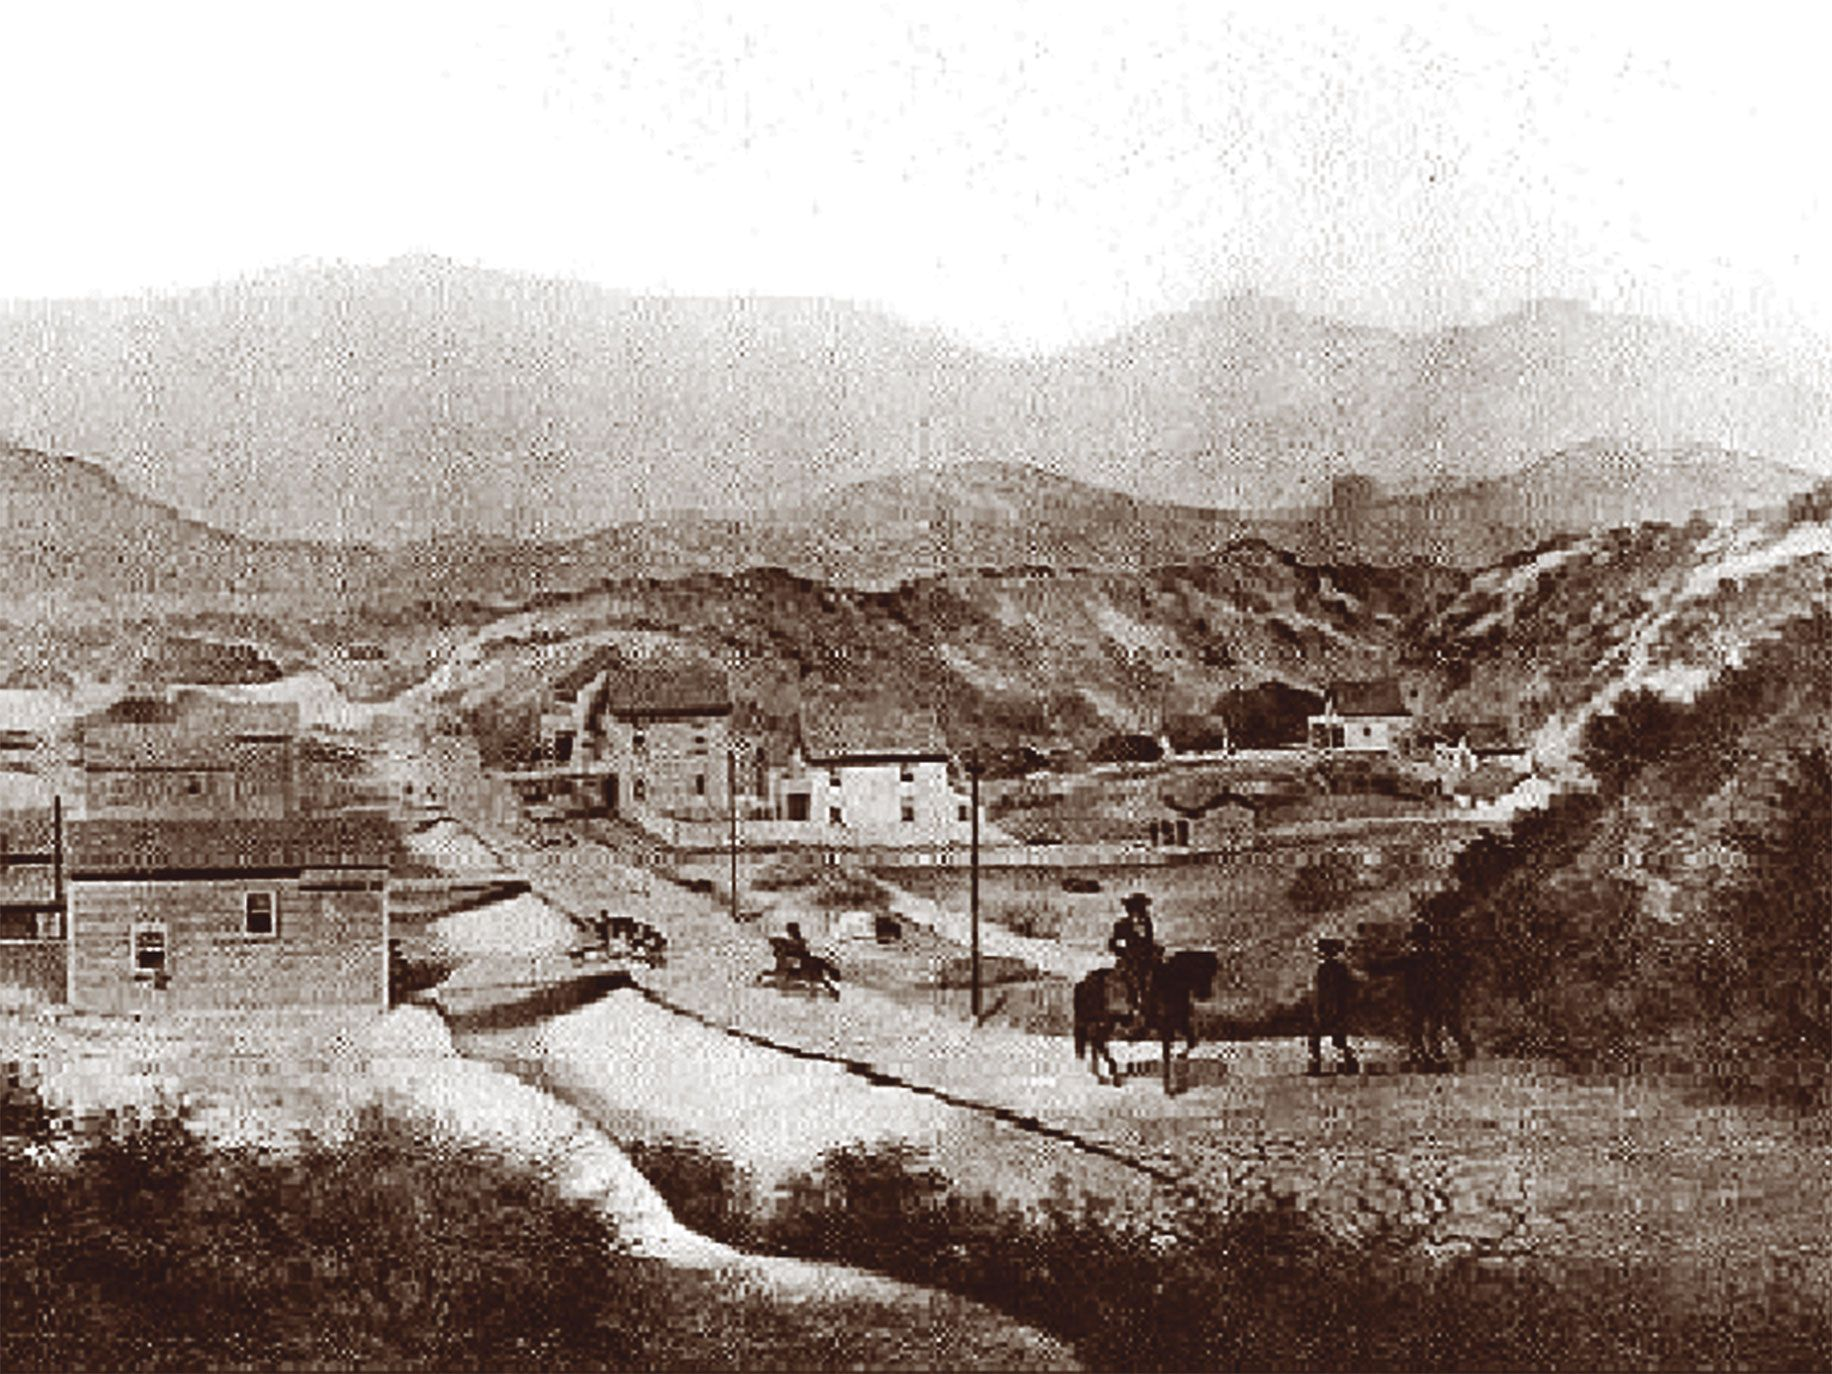 An 1856 illustration of San Francisco's Mission Plank Road.